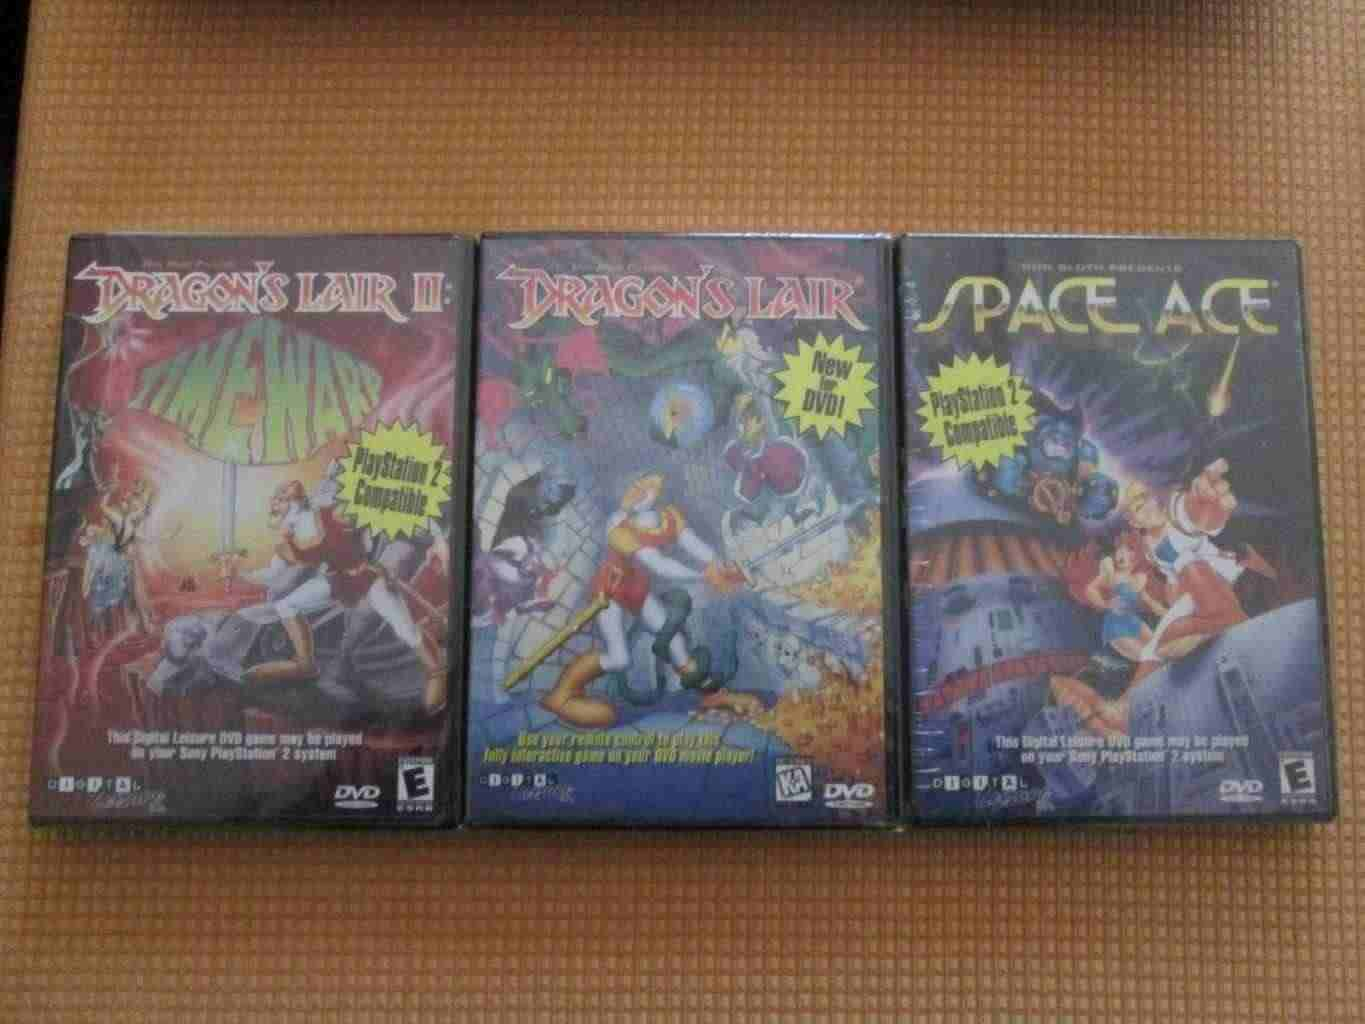 DRAGON'S LAIR 1 + 2 +SPACE ACE dvd game nuovo